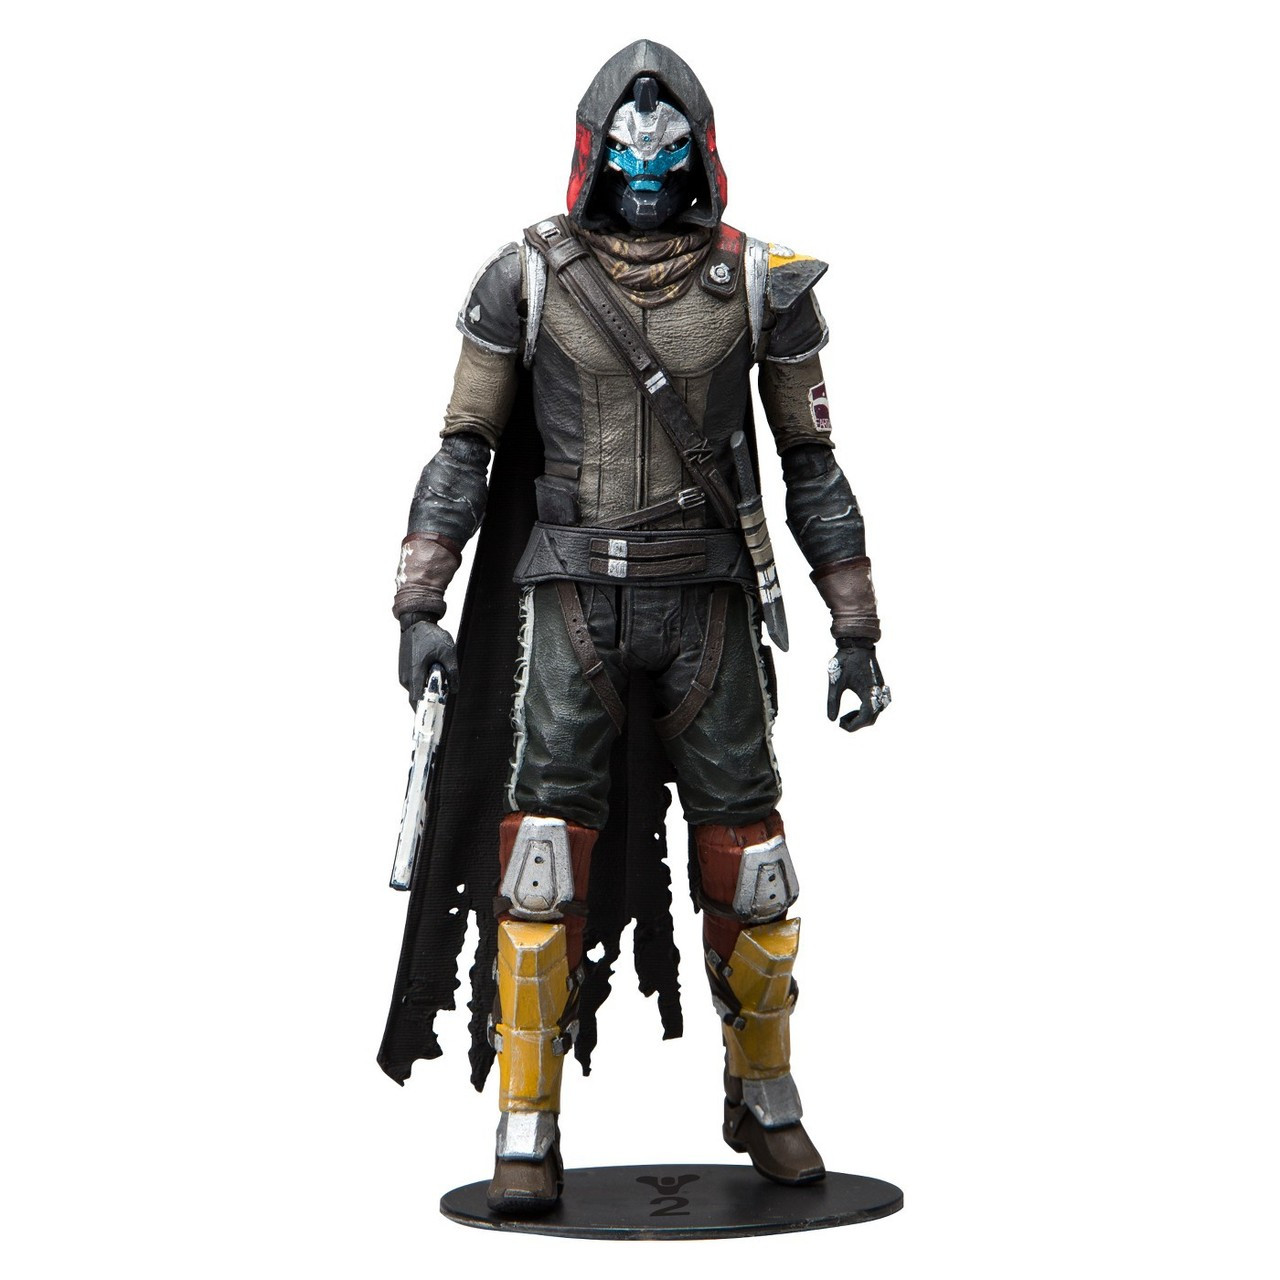 Destiny 2 Cayde 6 7-Inch Action Figure